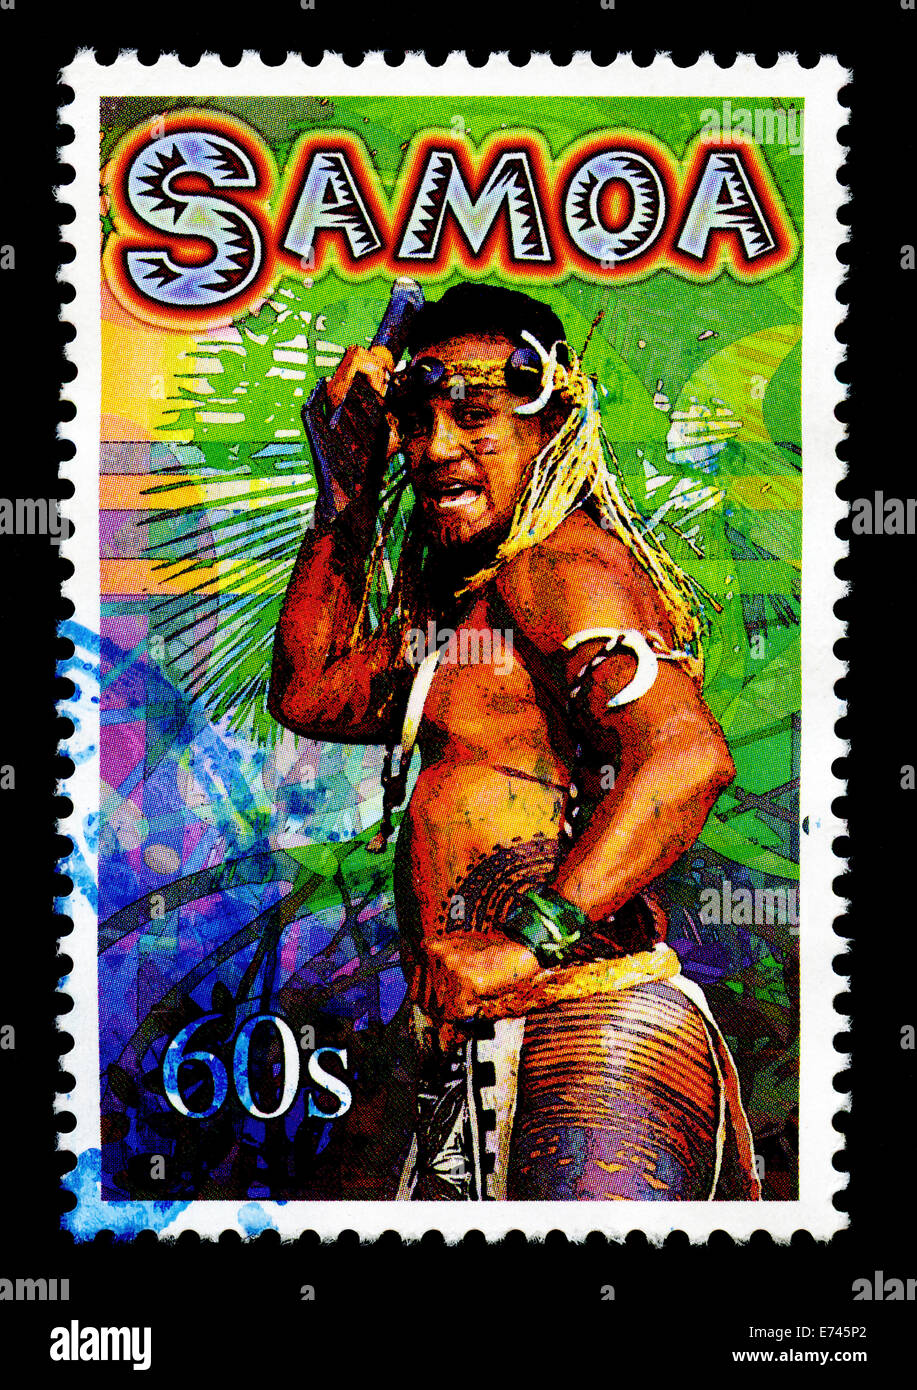 Samoa stamp depicting local people - Stock Image